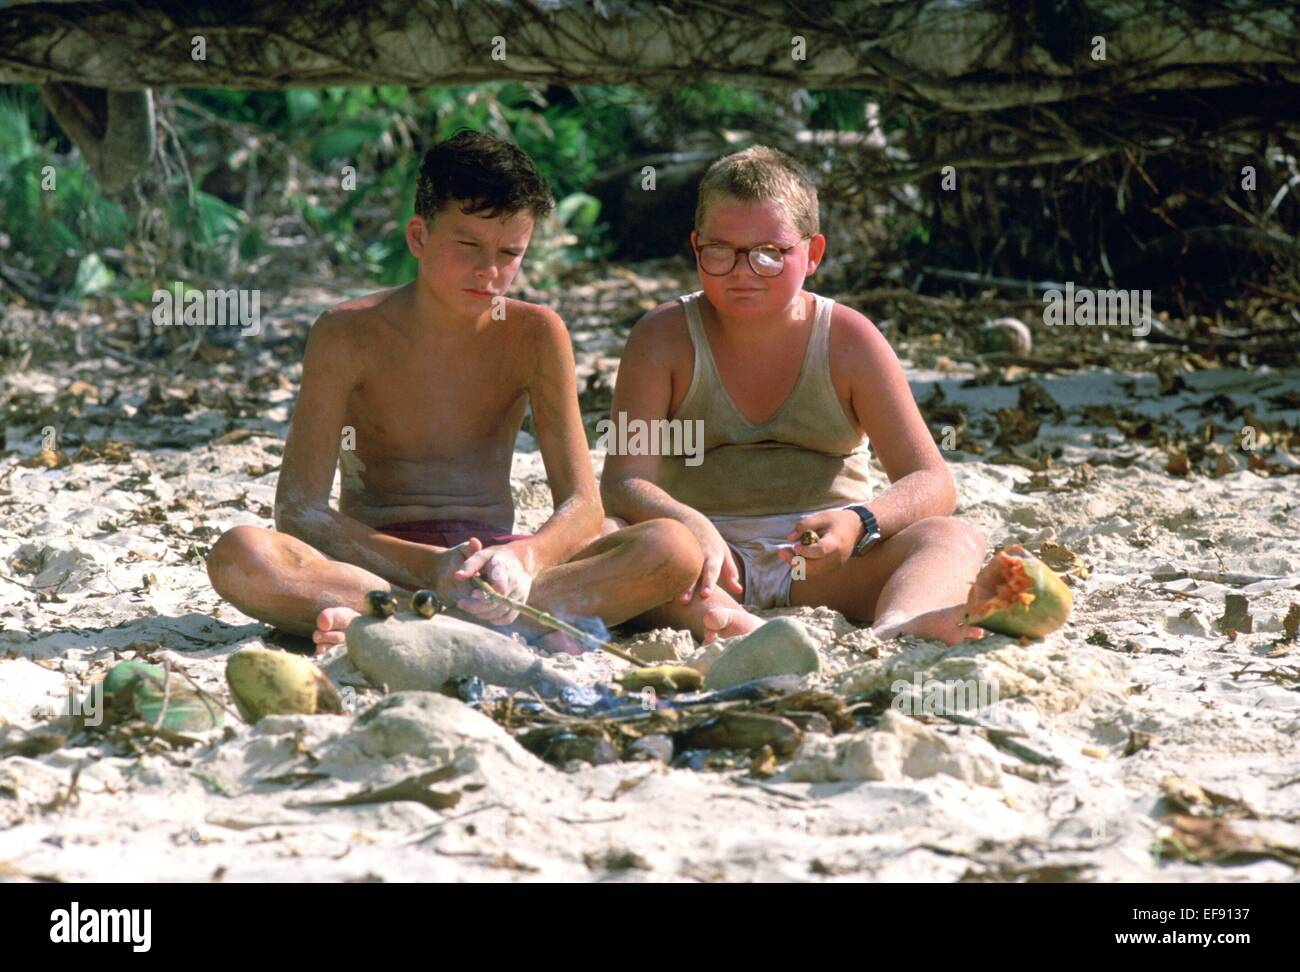 lord of the flies movie and Lord of the flies is a modern remake of the william golding classic that was written, produced, performed and edited completely by me, my brothers, and other children.